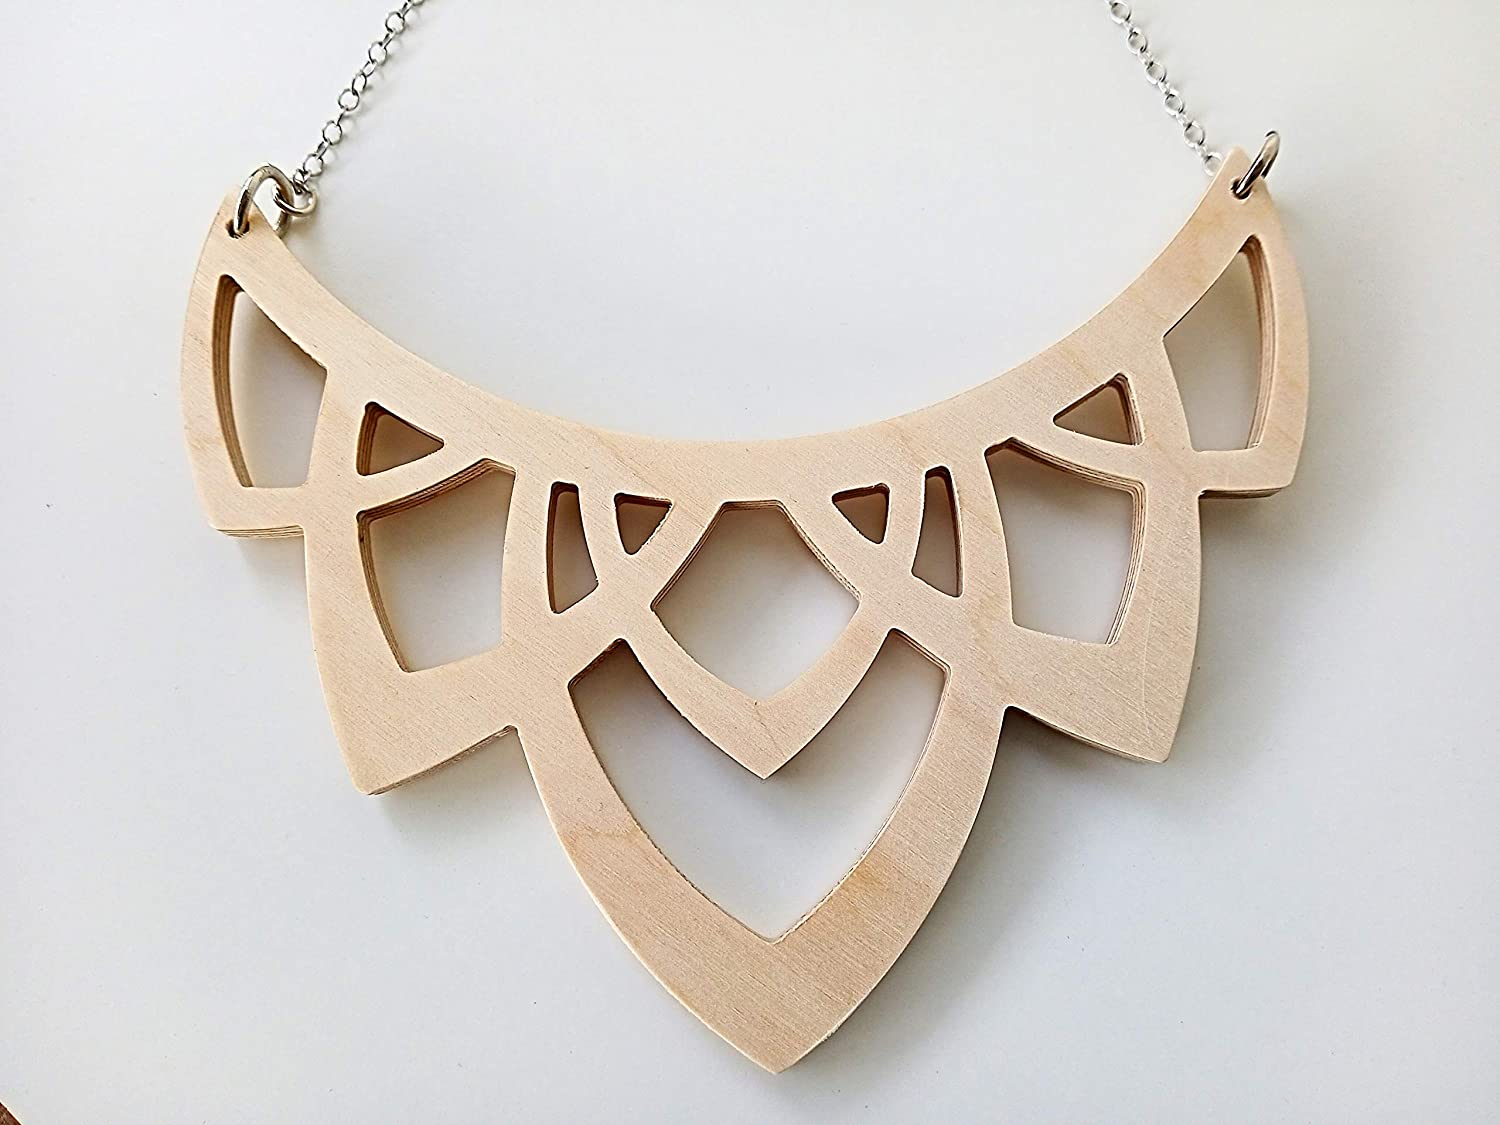 Free shipping Statement bib necklace from plywood Romantic Las Vegas Mall vintage chai style